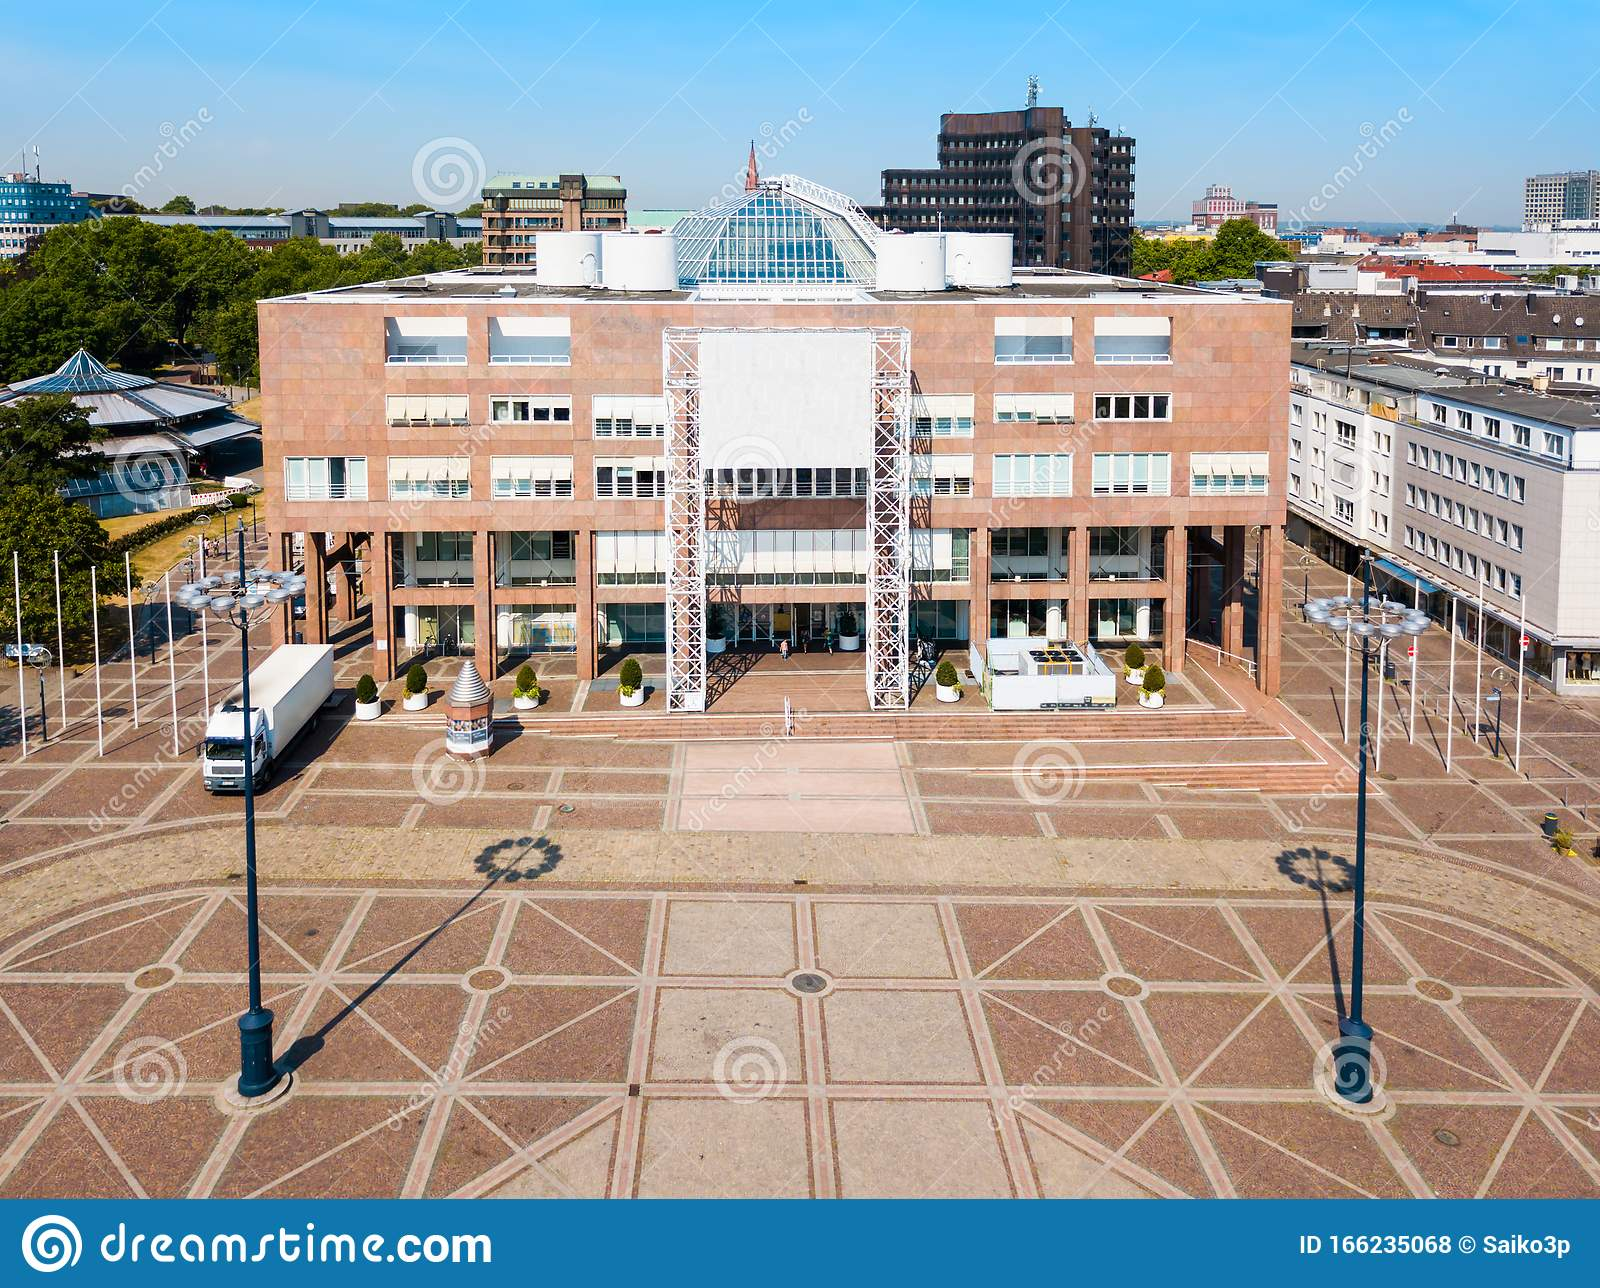 Dortmund City Centre Aerial View Stock Photo - Image of travel,  architecture: 166235068